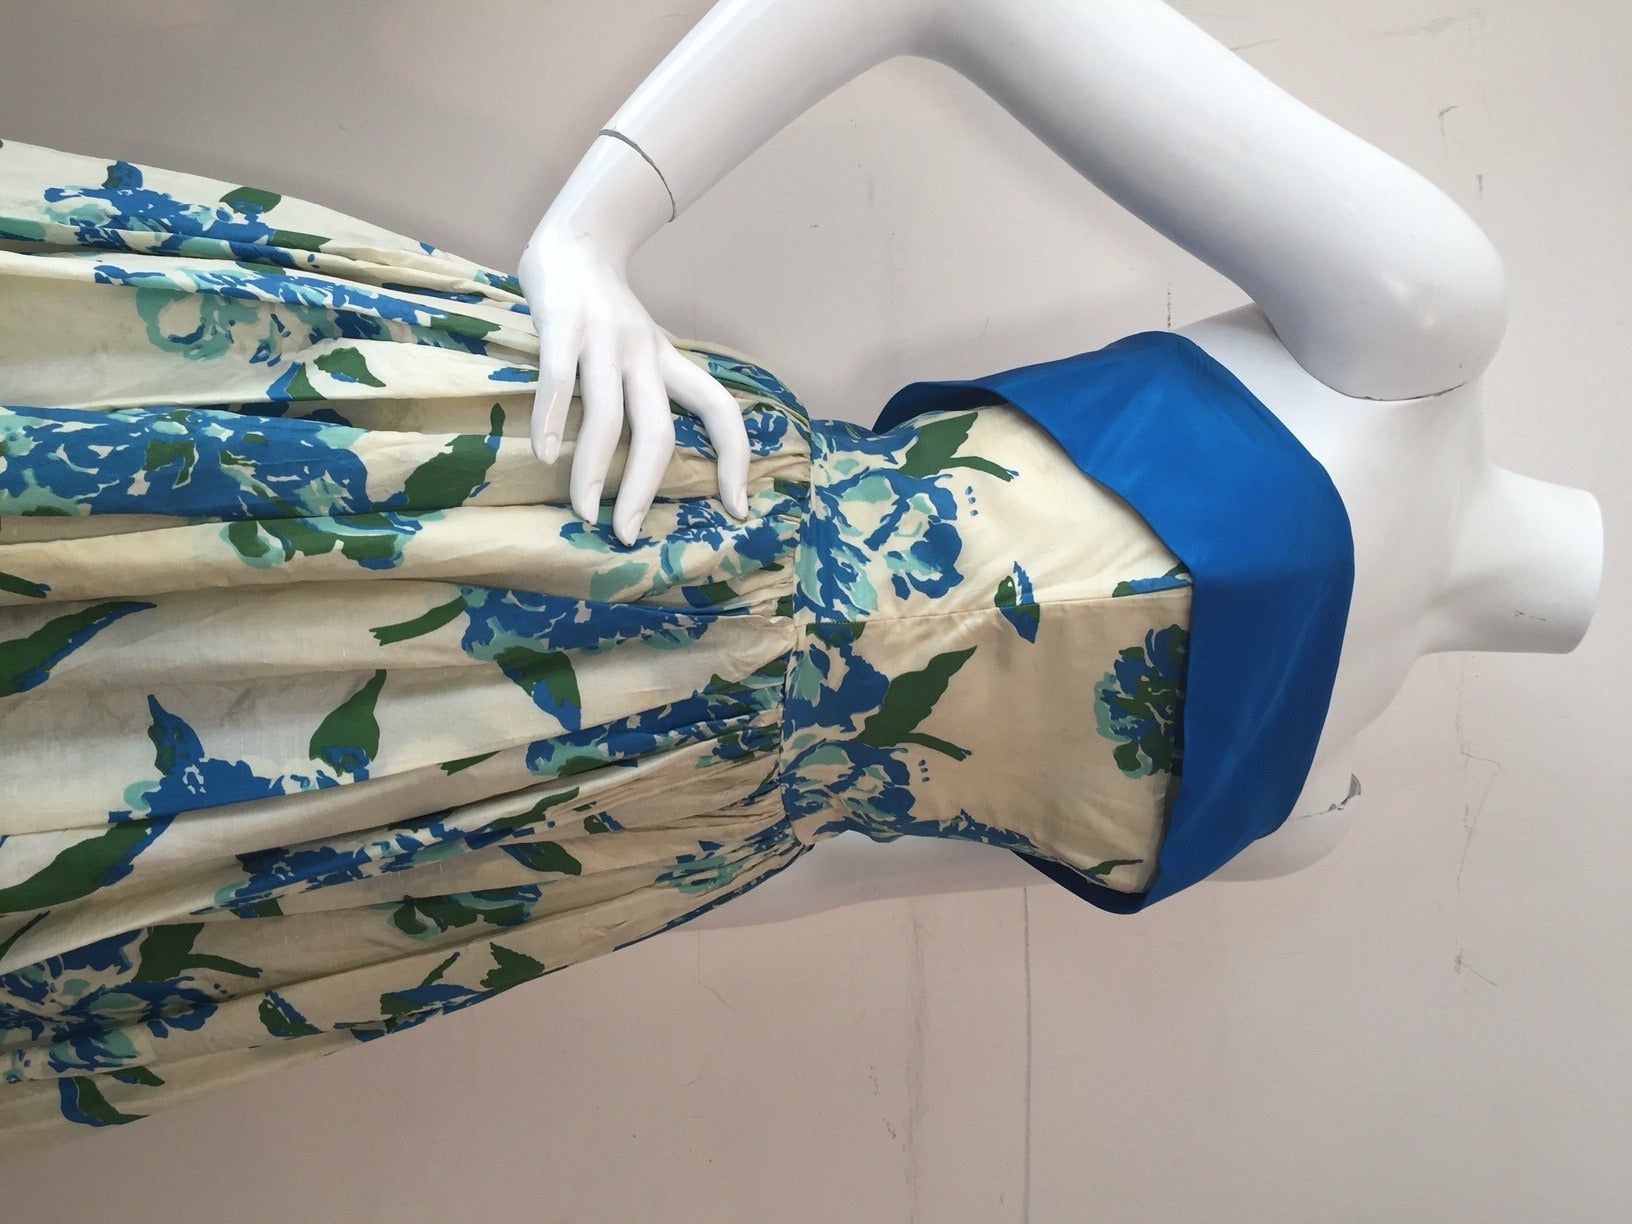 1950s Silk Floral Print Strapless Summer Dress in White, Blue and Green 3